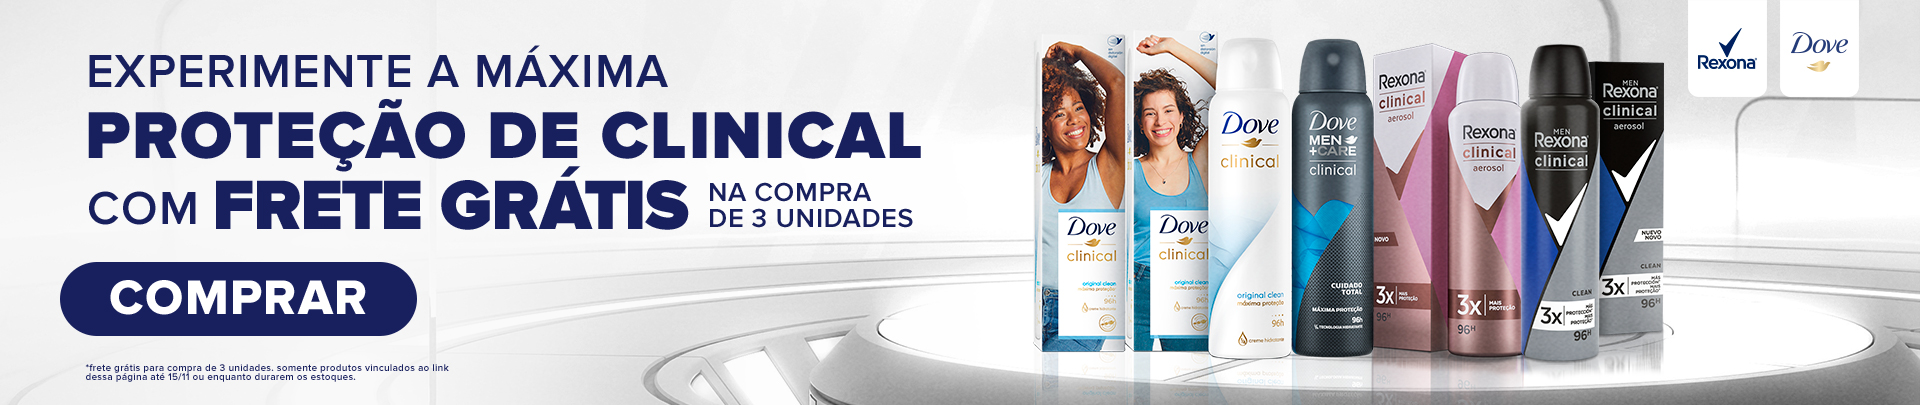 Rexona-Clinical-FG